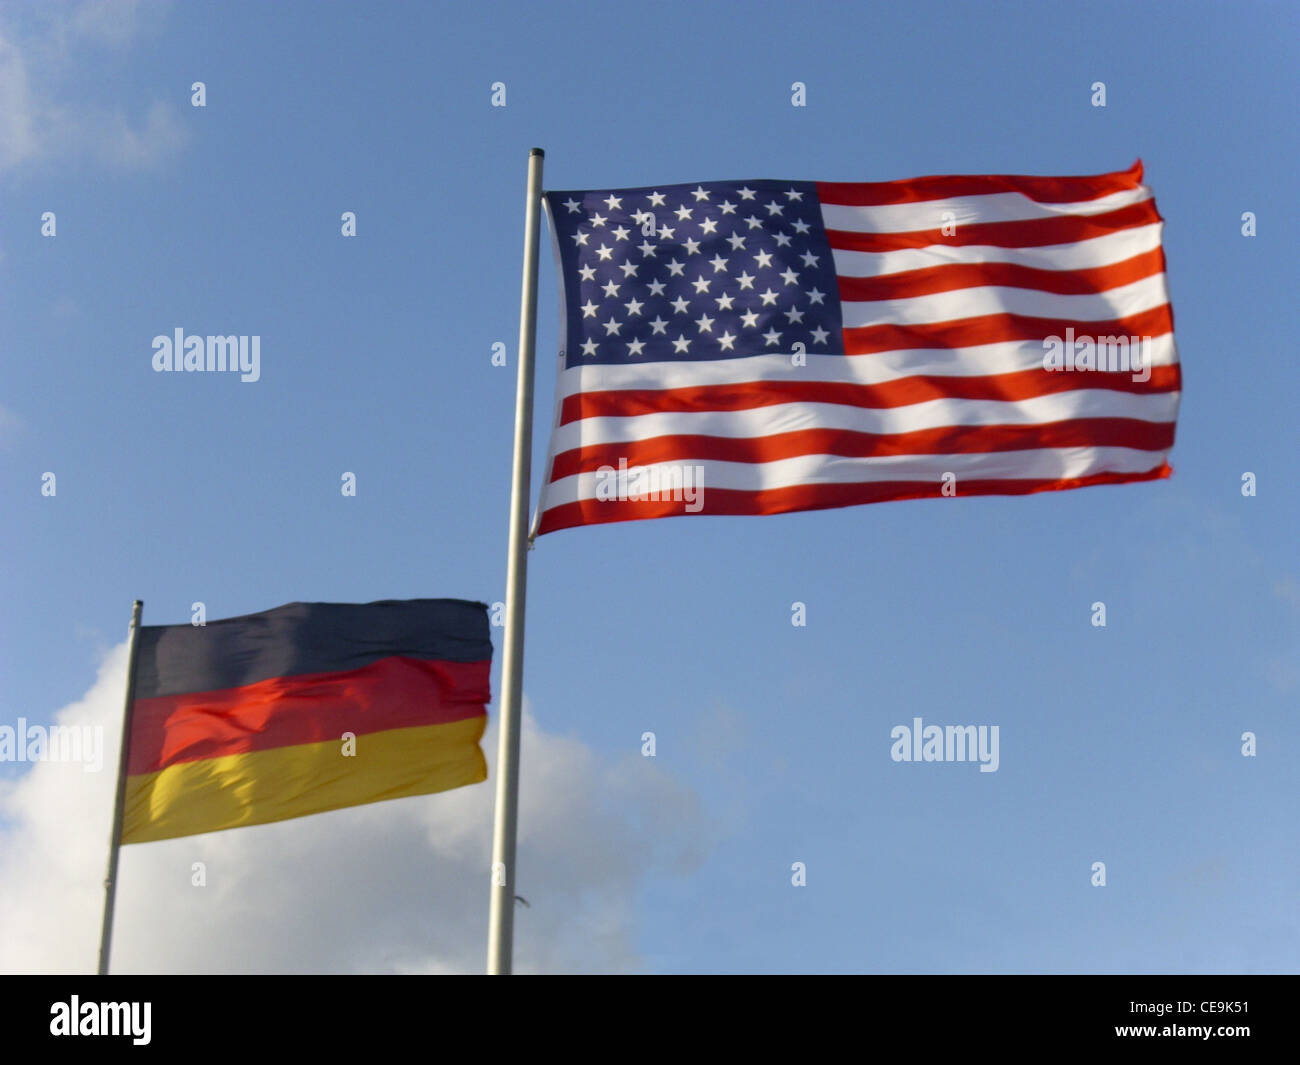 Flags of the United States of America and the Federal Republic of Germany - Stock Image